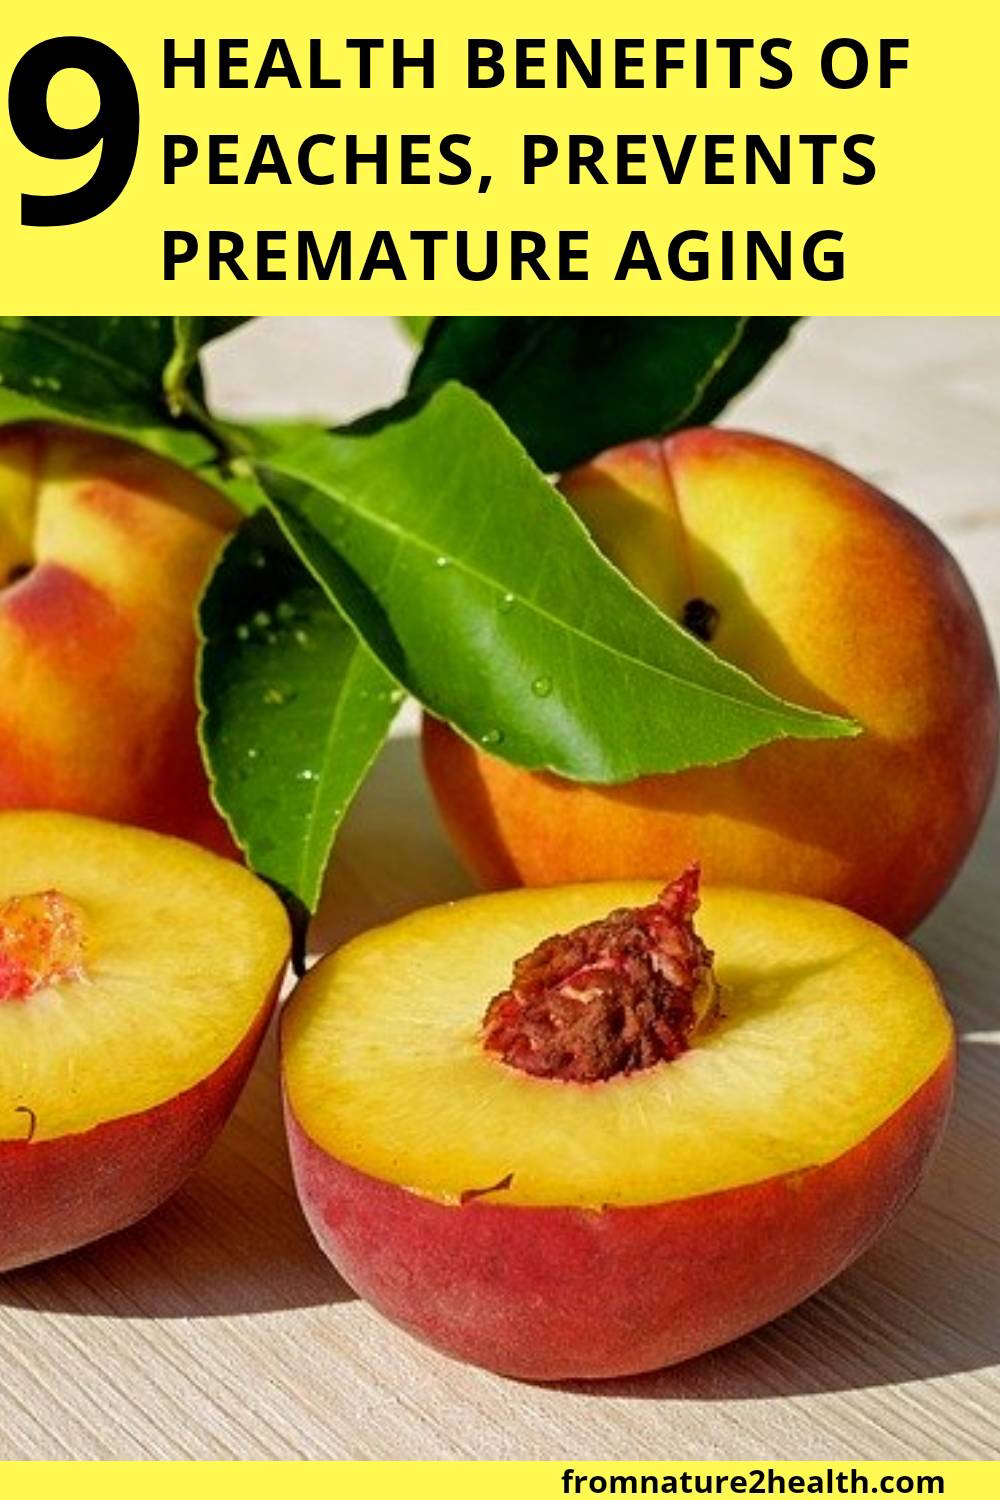 9 Health Benefits of Peaches, Prevents Premature Aging